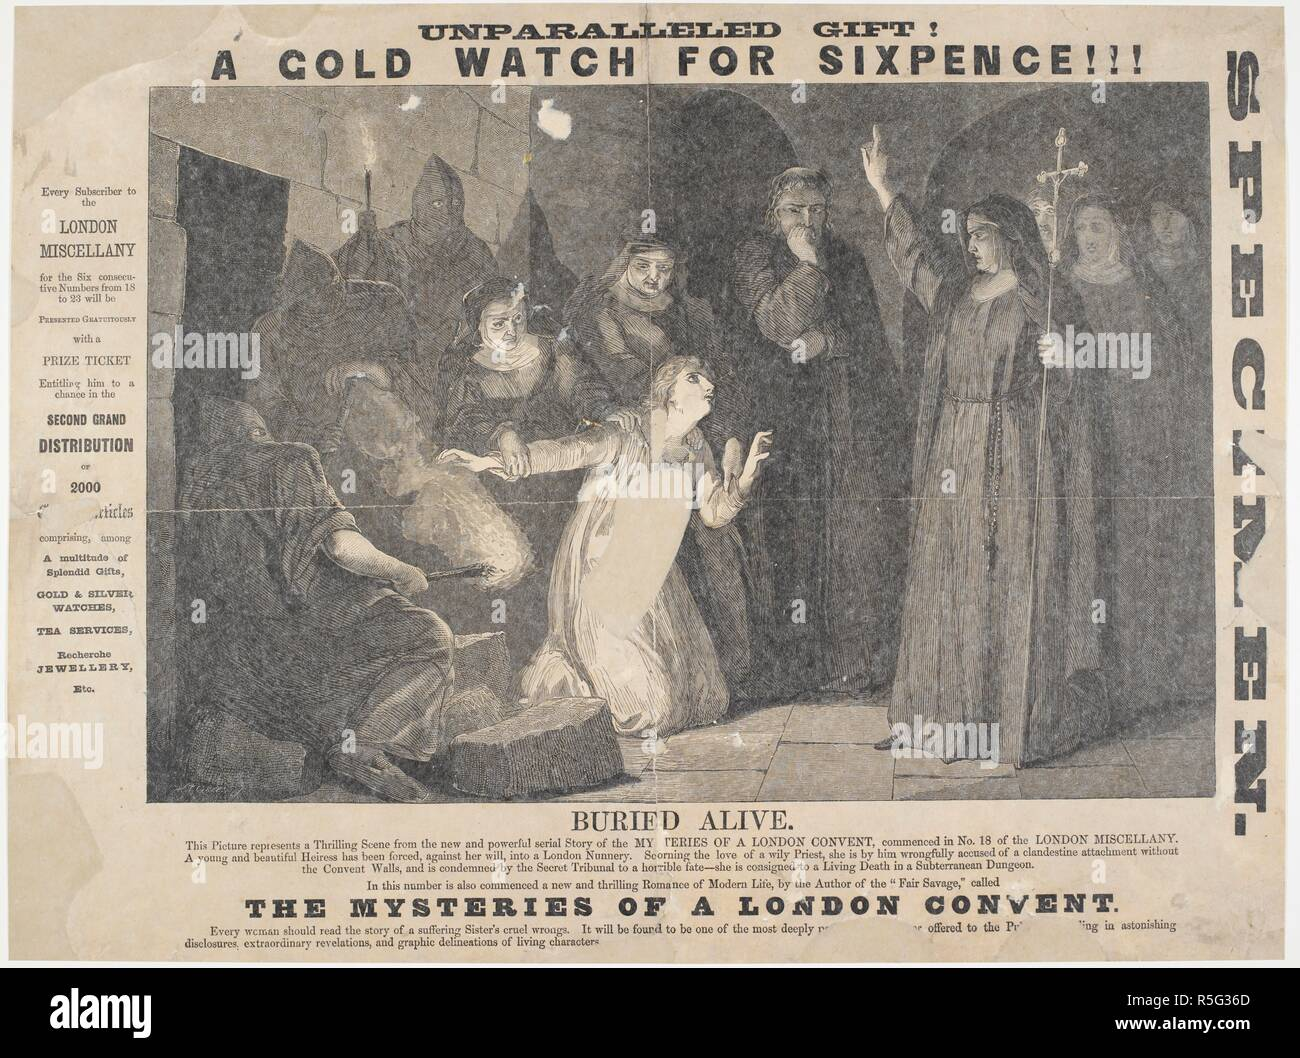 'Unparalled gift! A cold watch for sixpence!!! Buried alive. The story of a rich heiress forced against her will into a nunnery, and 'consigned to a living death in a subterranean dungeon'. One of a series of stories, 'the mysteries of a London convent.'. The London Miscellany. London, 1866. A poster. 1 sheet ; 38 x 51 cm. Source: HS.74/1069.(6.). - Stock Image